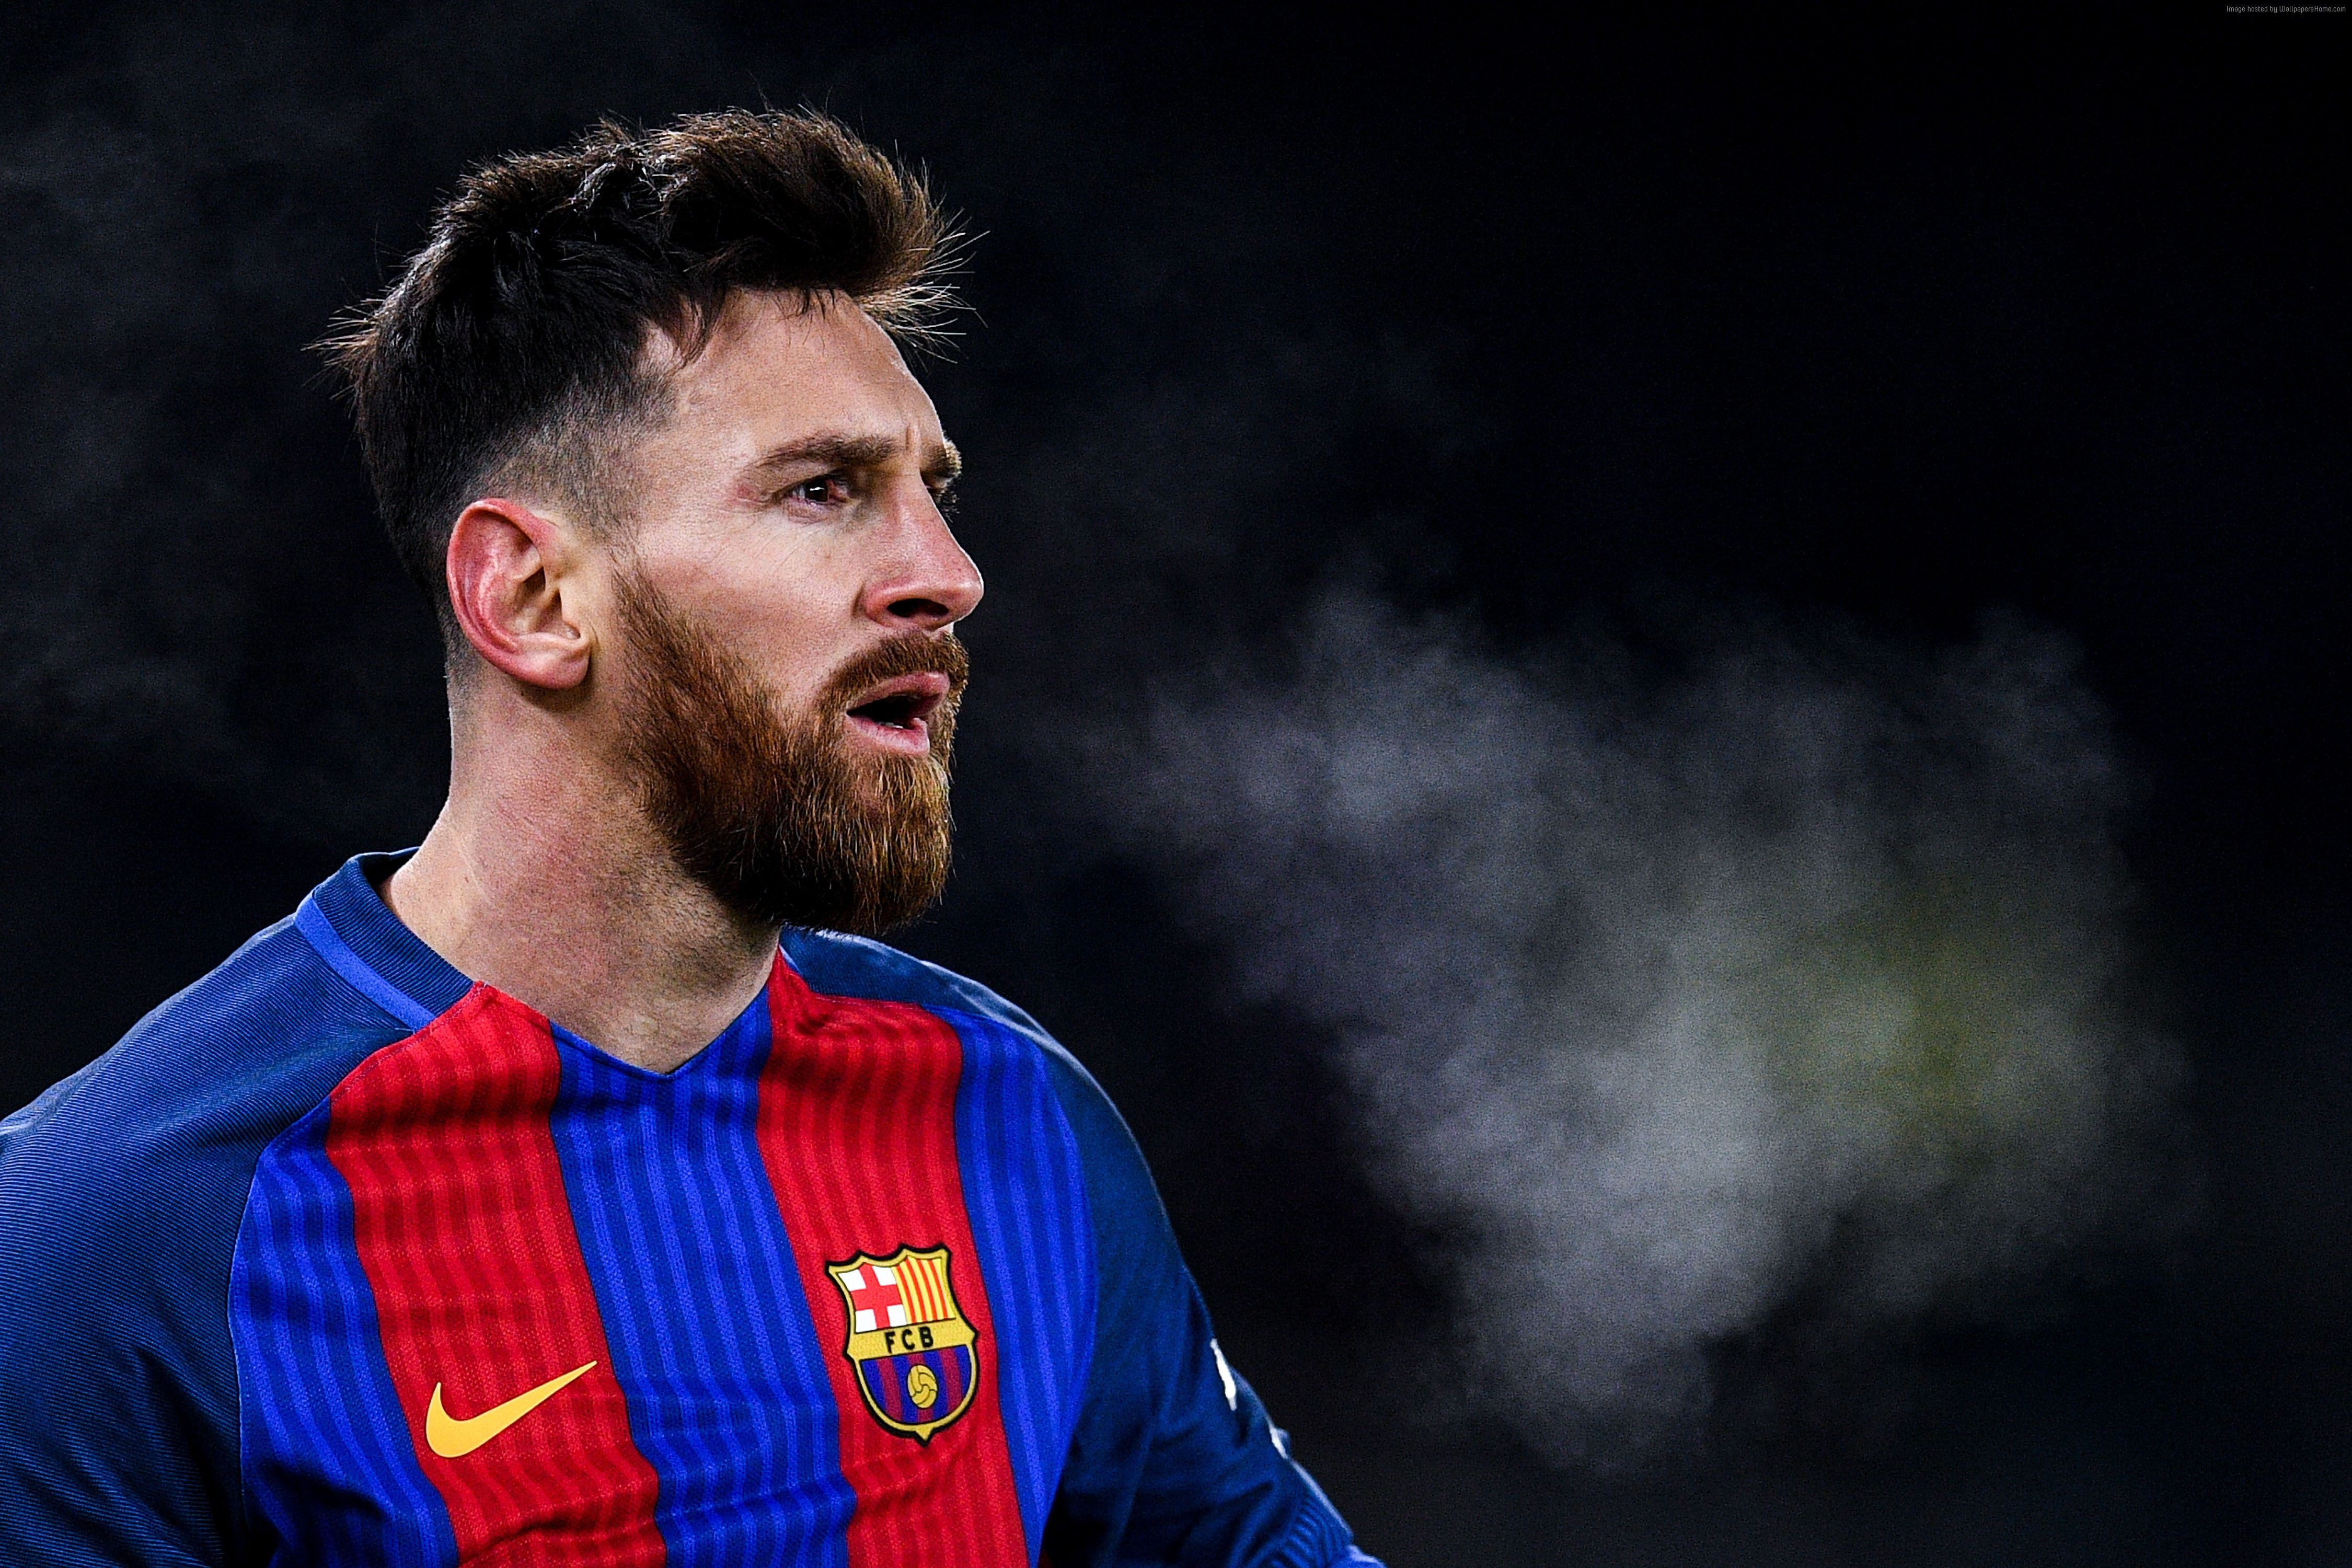 Wallpaper Lionel Messi Soccer Football The Best   Messi 2017 4500x3000